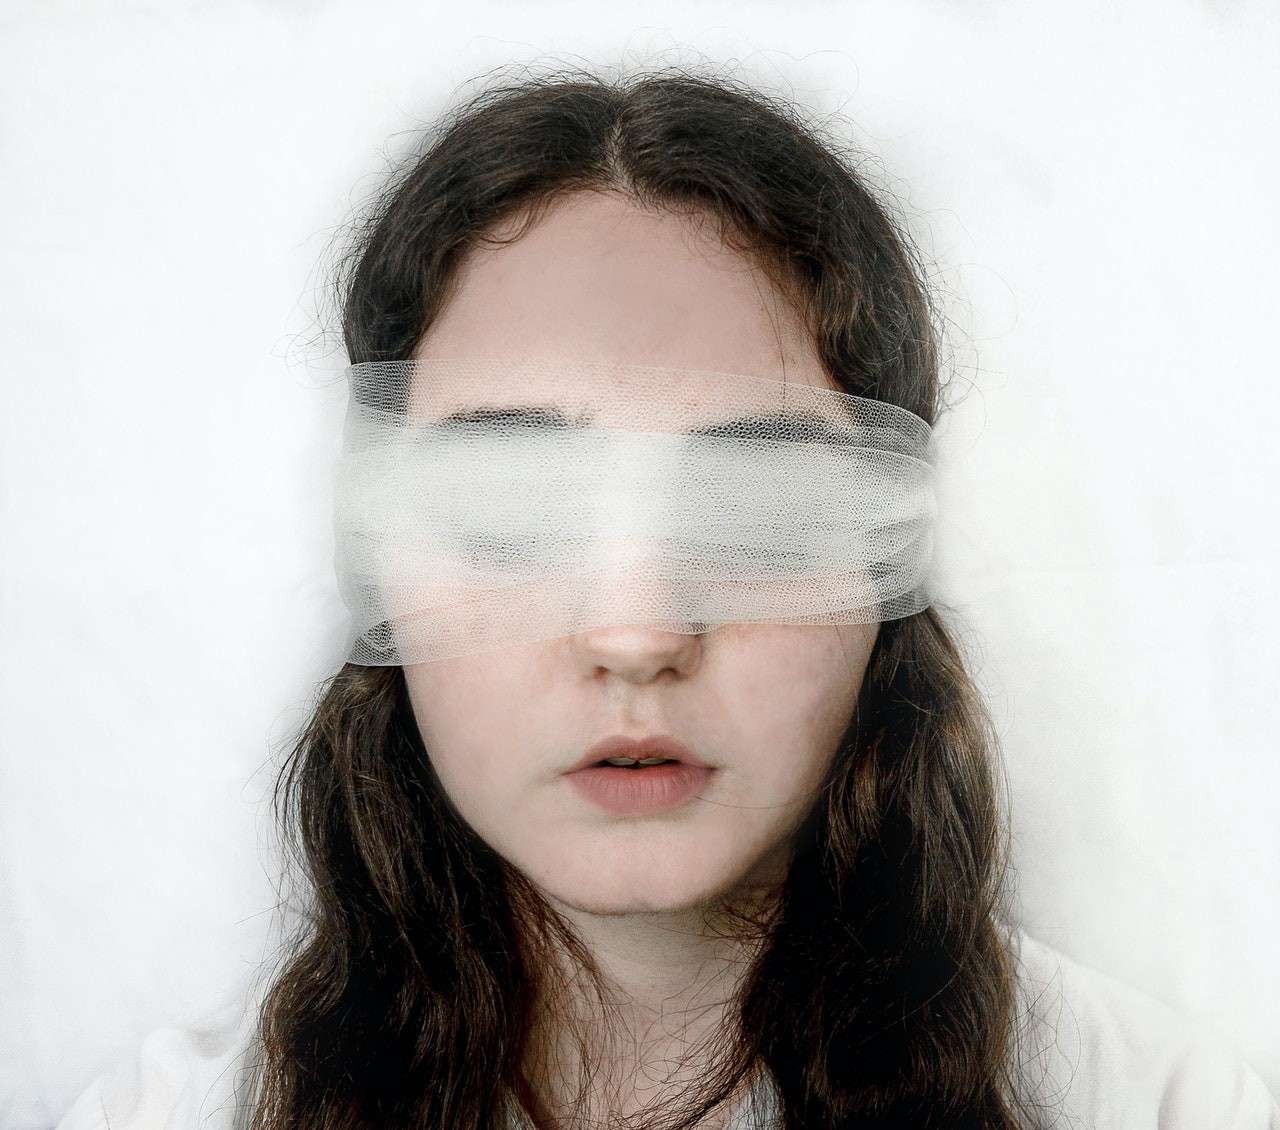 a White woman's face, eyes closed, wearing a white, gauzy blindfold